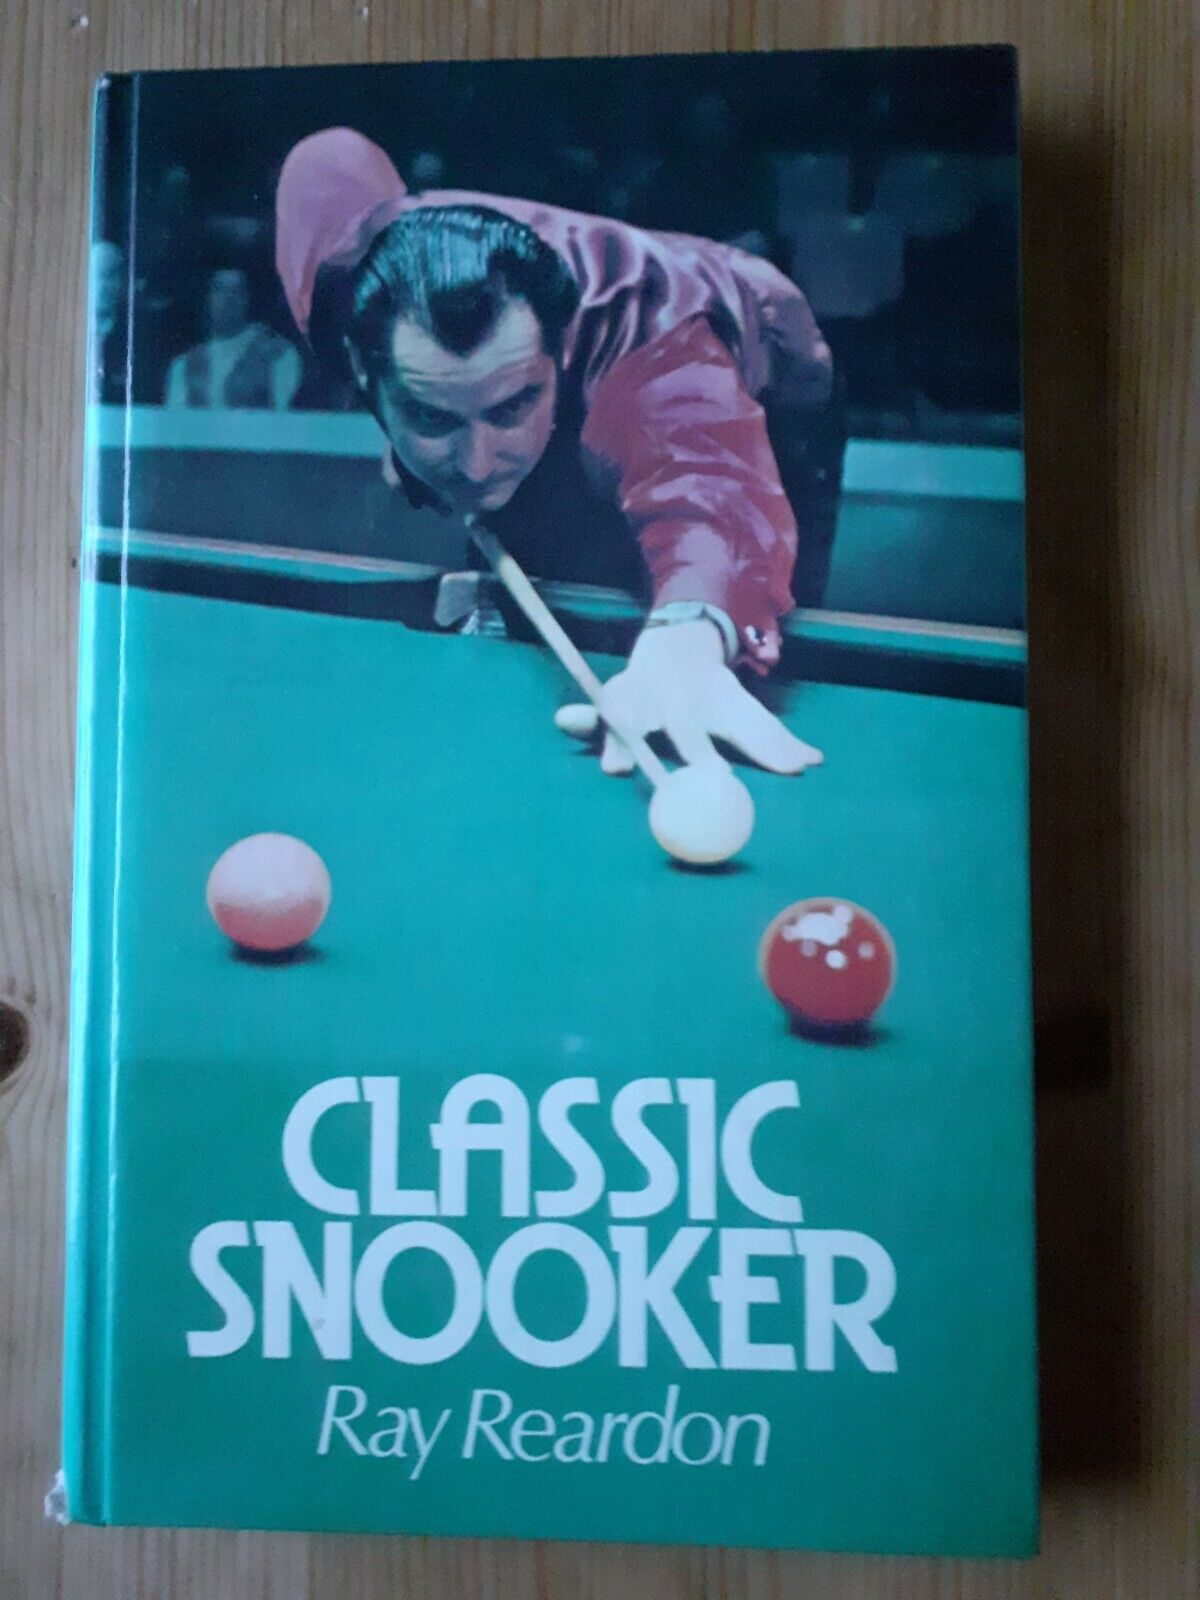 Classic Snooker Book-Learn How to Play by Ray Reardon Pub. 1977